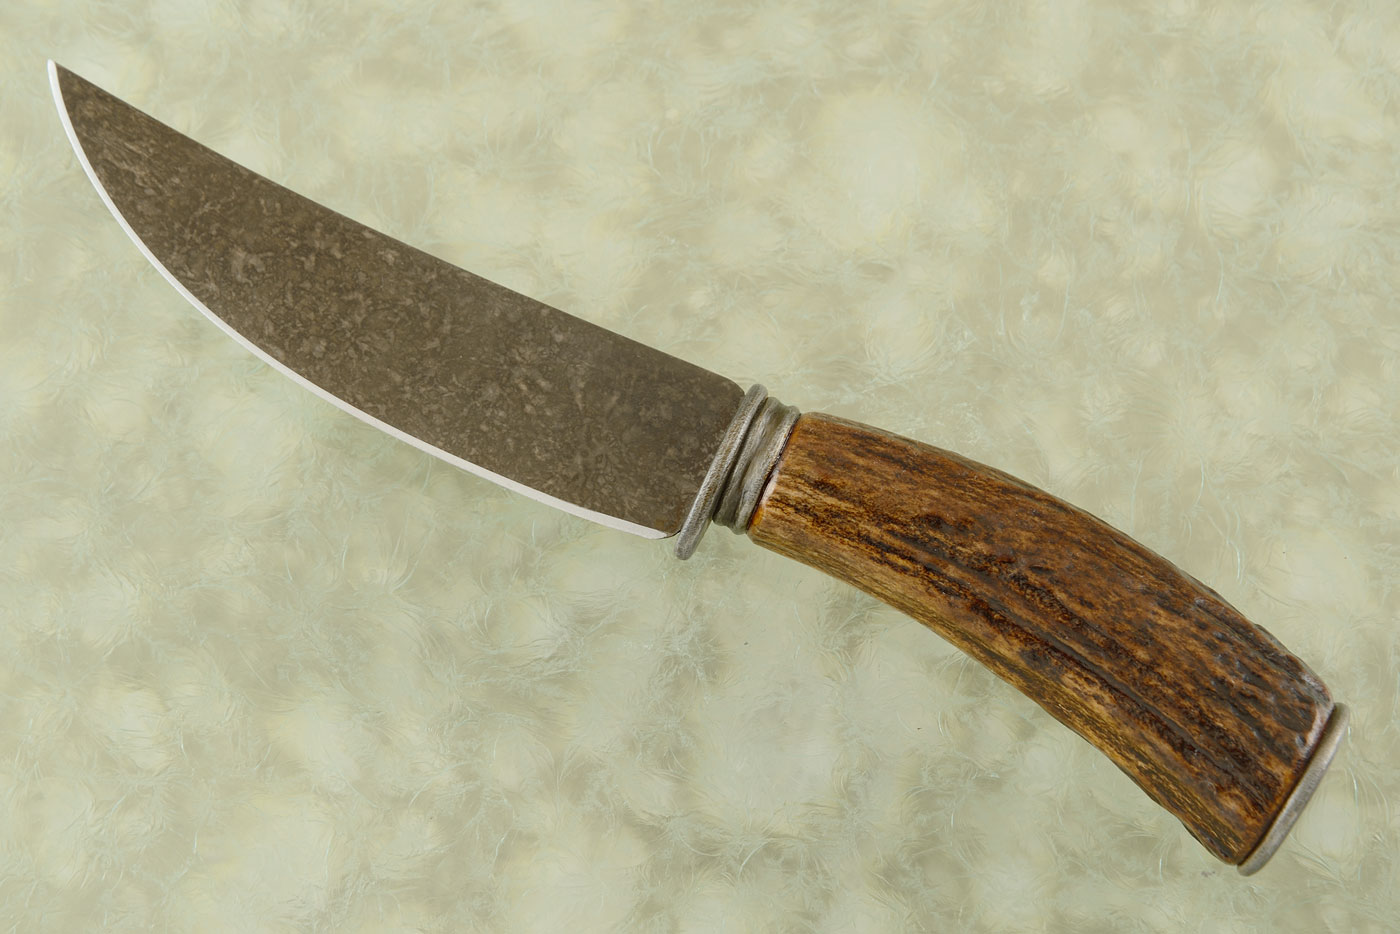 Upswept Skinner with Stag